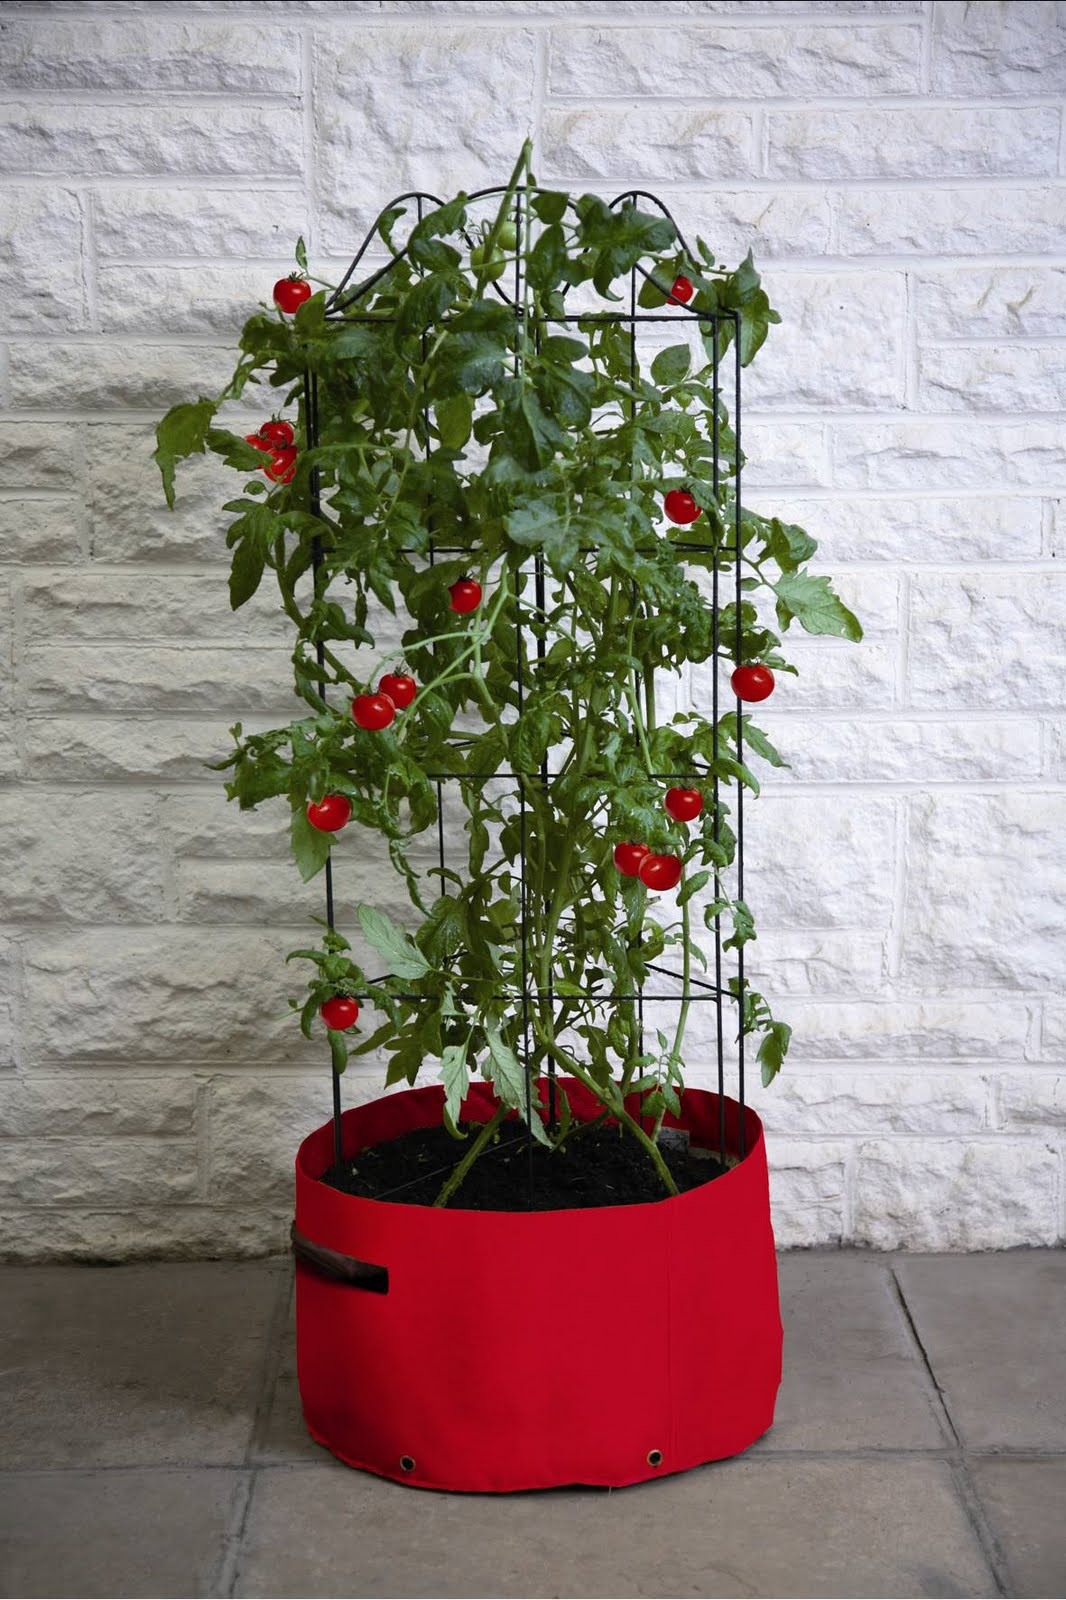 growing tomatoes in patio planters tips haxnicks. Black Bedroom Furniture Sets. Home Design Ideas